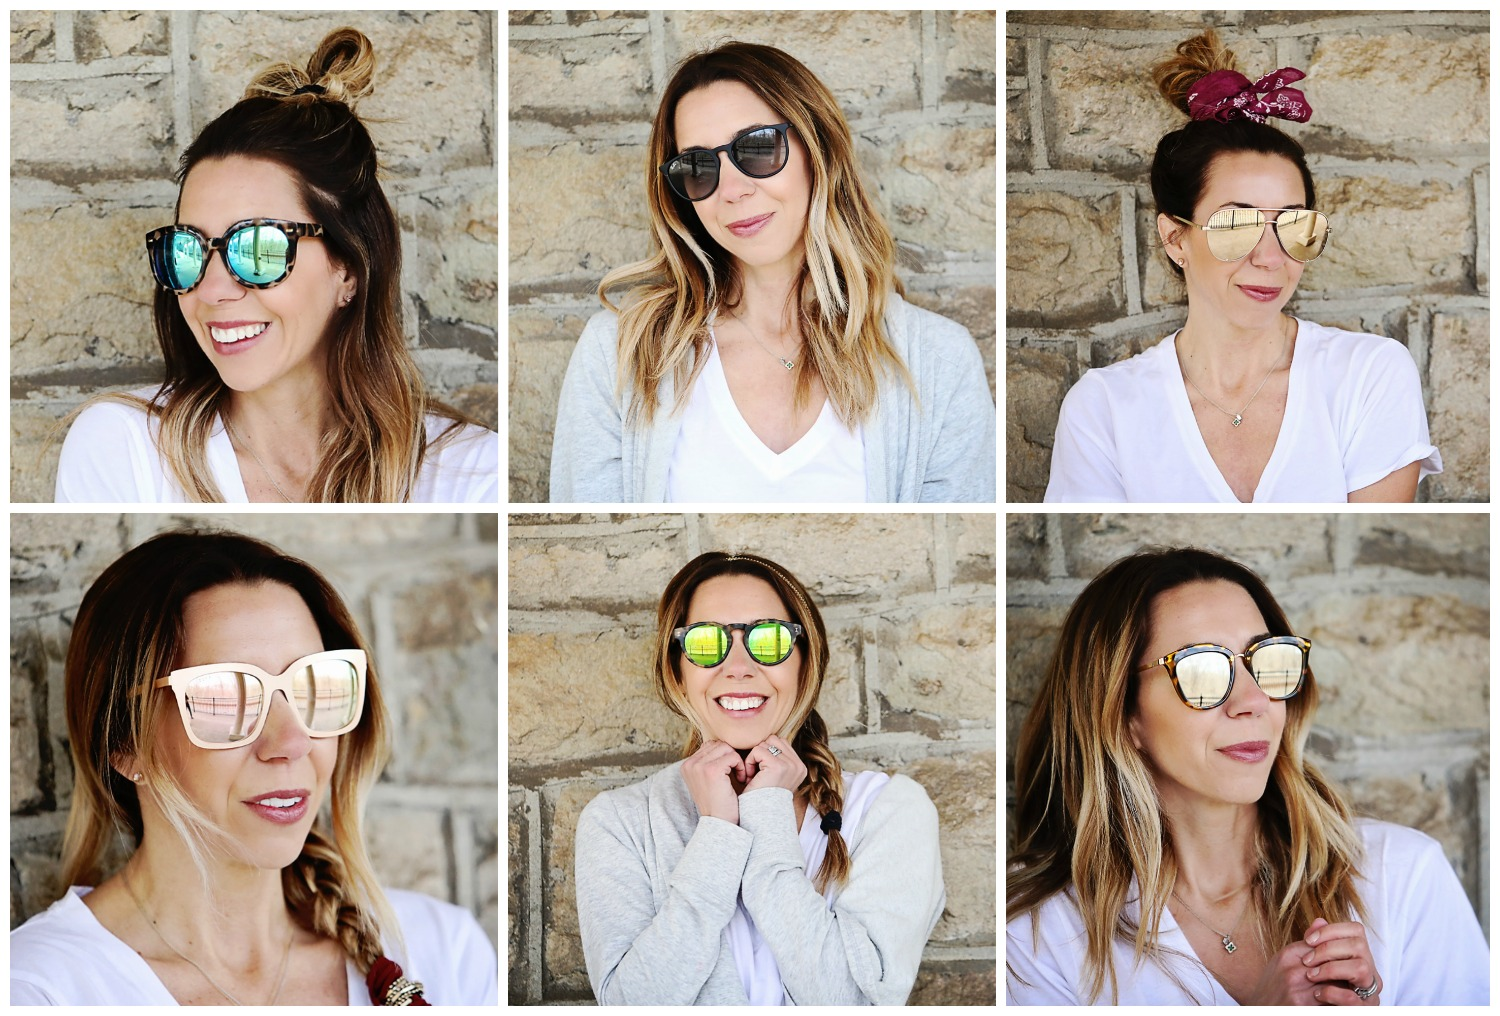 The Motherchic Sunglass edit